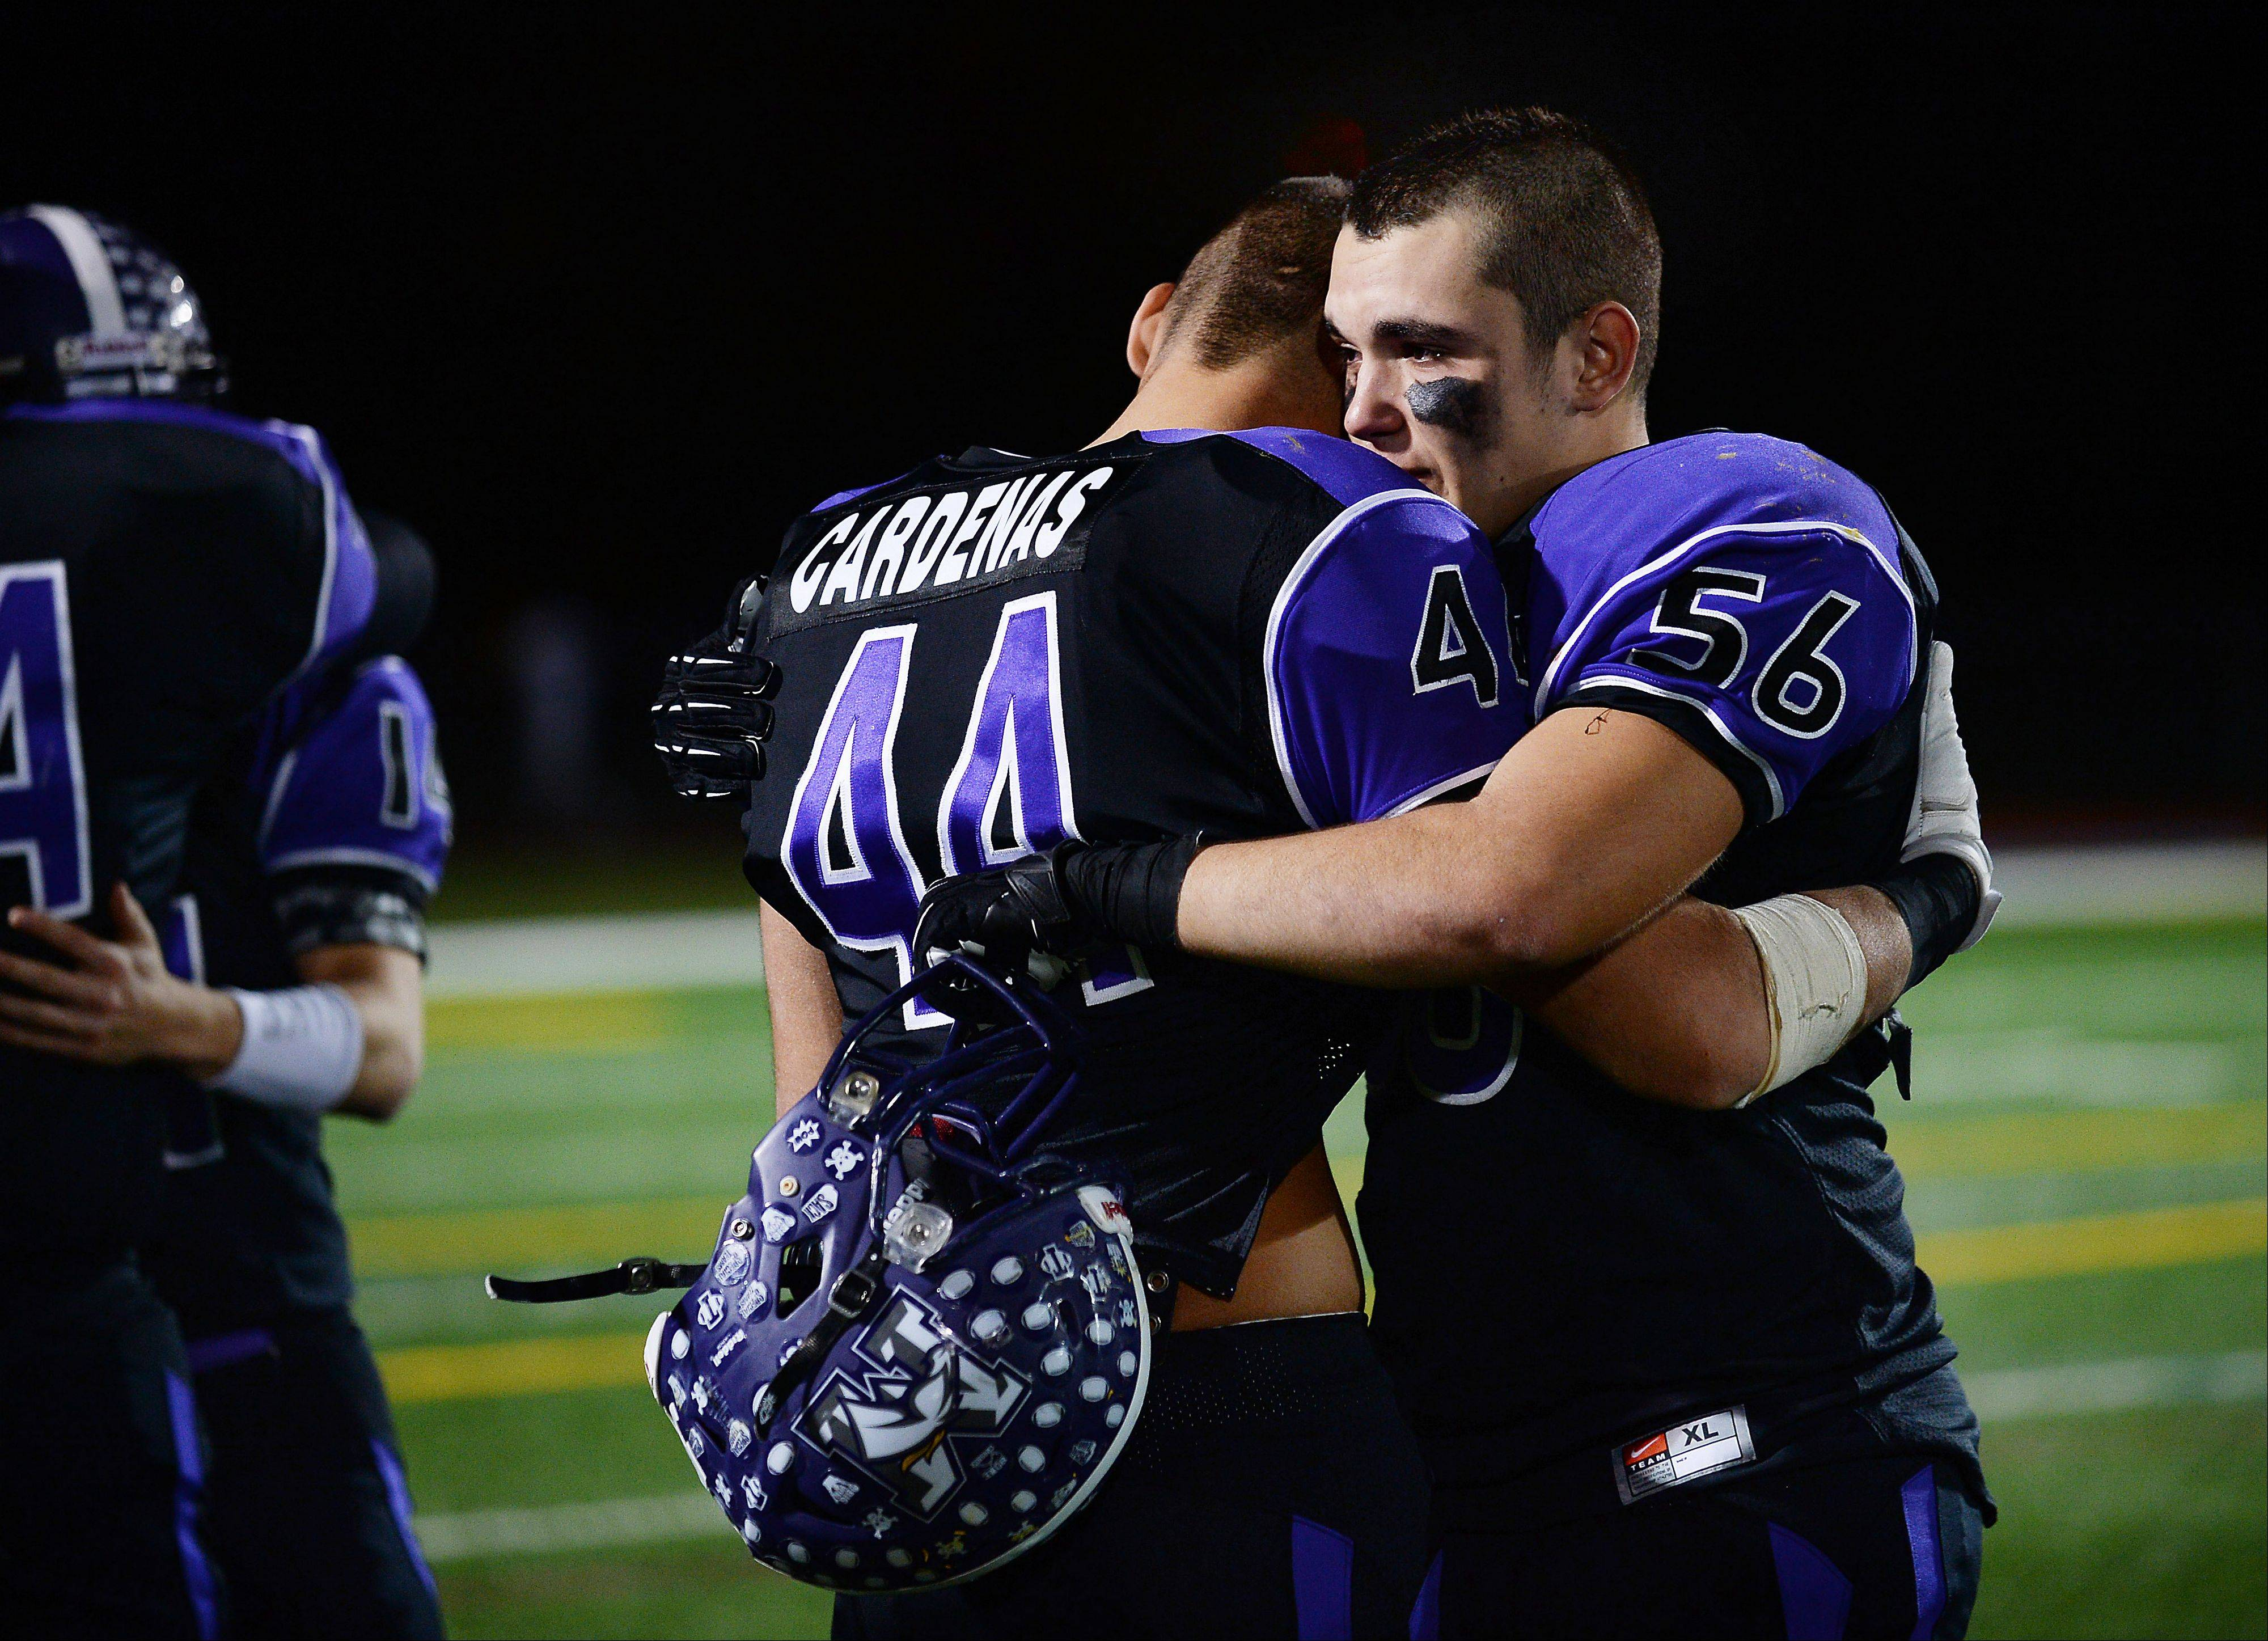 Rolling Meadows players Eddie Cardenas and George Someris embrace following Saturday's playoff loss to Batavia.